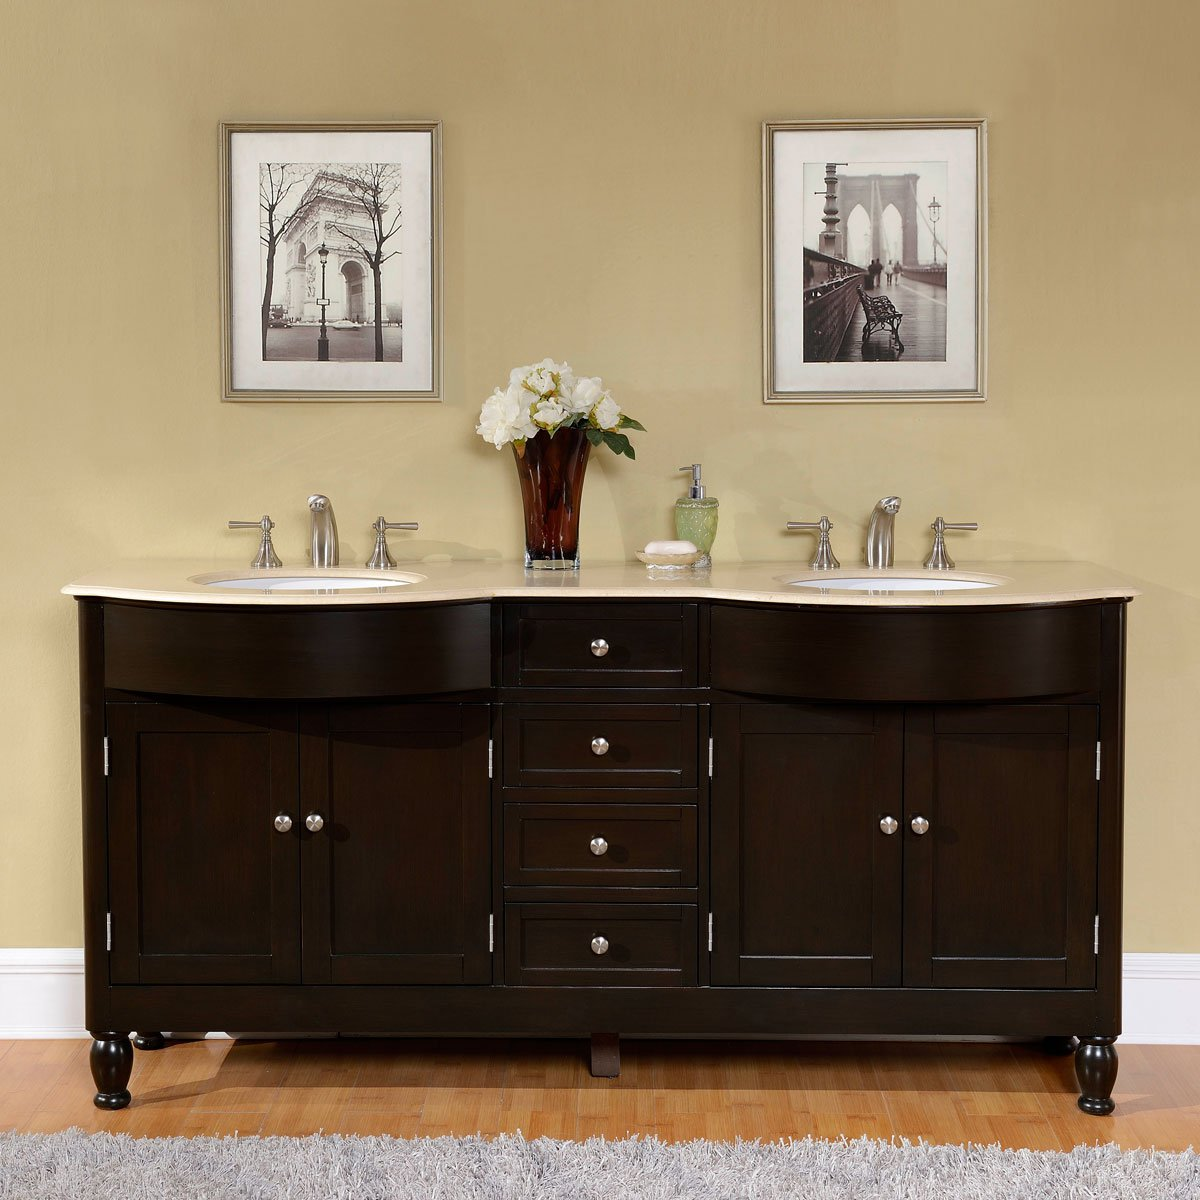 Silkroad Exclusive Cream Marfil Marble Stone Top Double Sink Bathroom Vanity with Cabinet, 72-Inch by Silkroad Exclusive